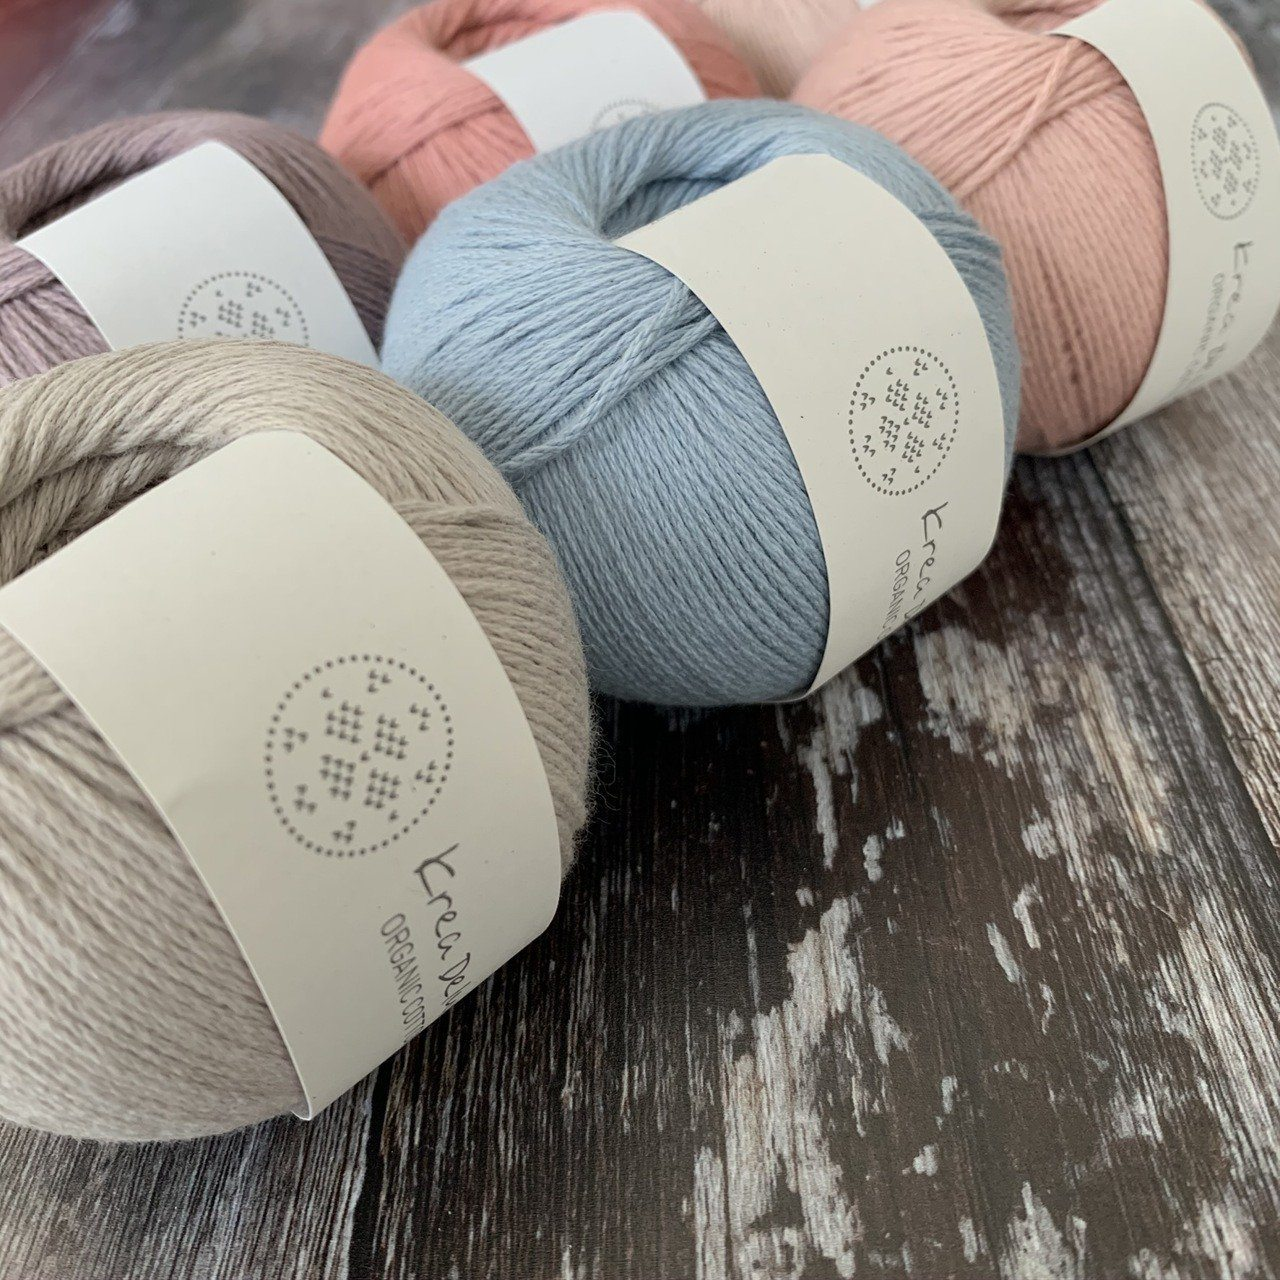 Krea Deluxe Krea Deluxe Organic Cotton -  - 4ply Knitting Yarn